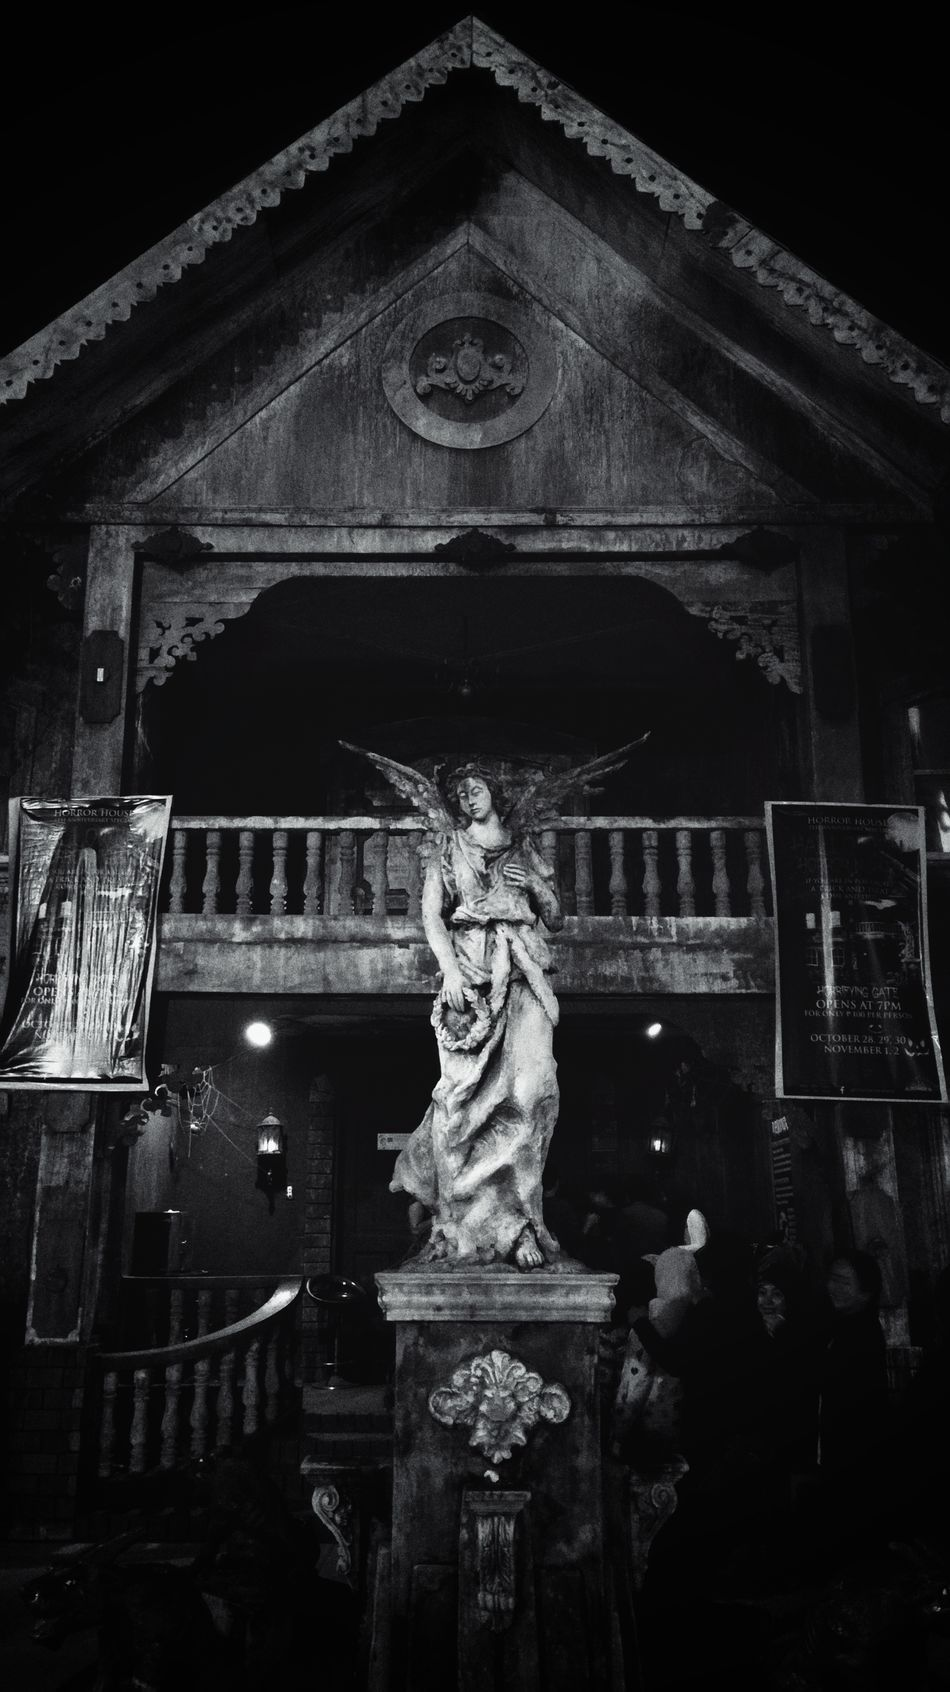 Haunted House Statue No People Built Structure Architecture Outdoors Sculpture Travel Destinations Geometric Architecture EyeemPhilippines Eyeem Philippines Lines And Patterns Black And White Collection  Black & White Photography EyeEm Travel Photography Arts Culture And Entertainment Architecture Culture And Tradition Belief And Faith Vacation Destination Human Representation Guardian Lifestyles Statue